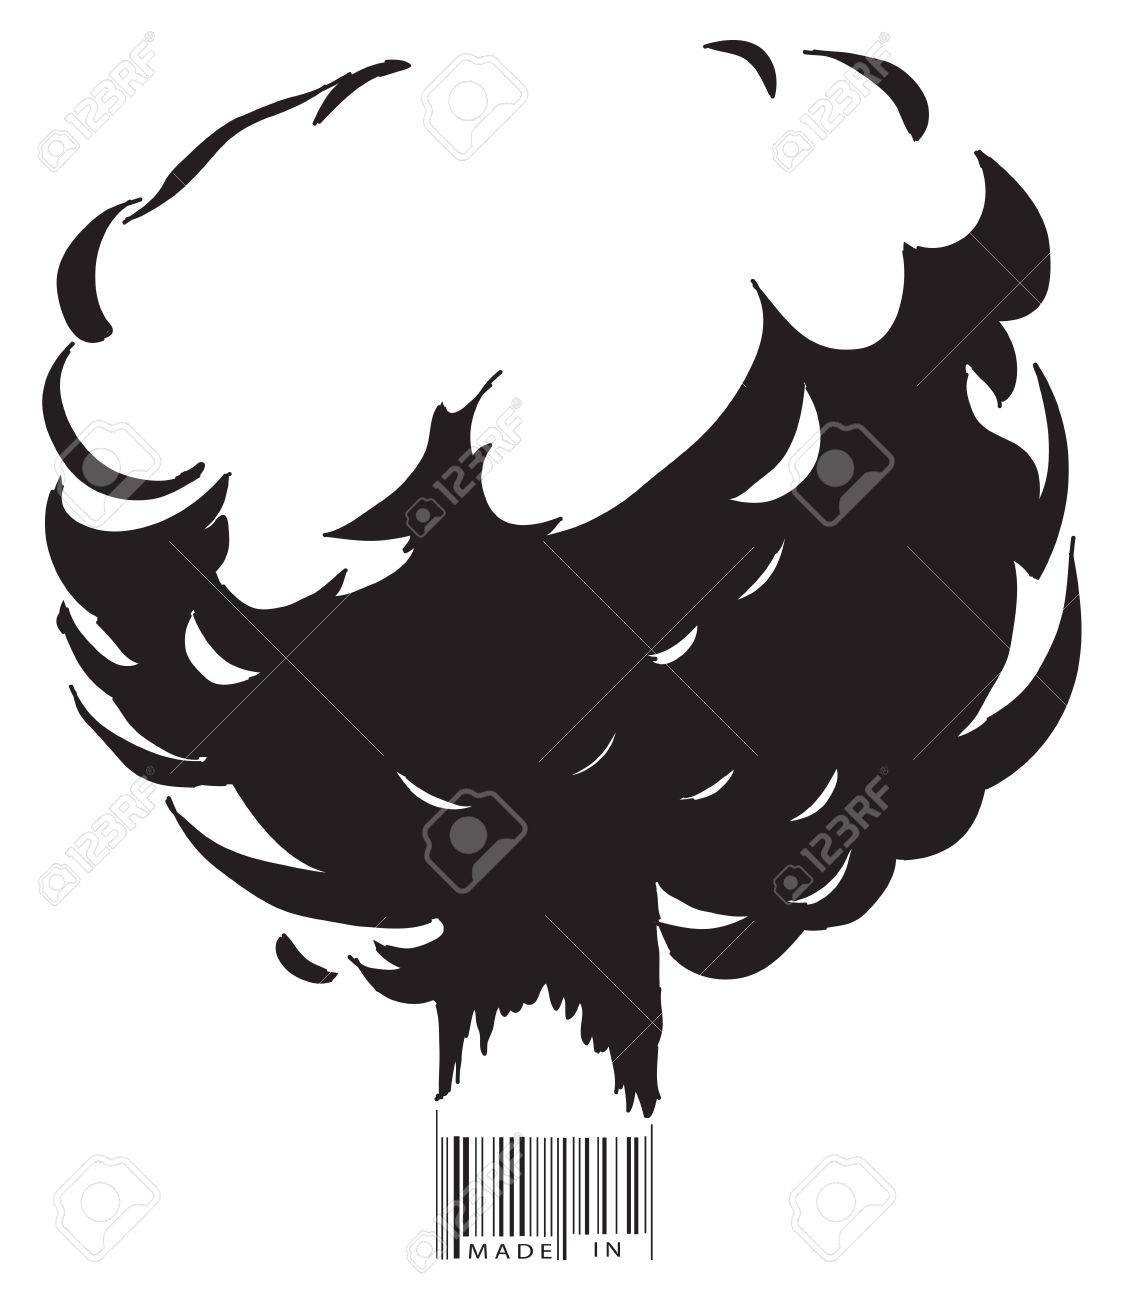 The explosion and the bar code text made in ... Vector illustration. Stock Vector - 11655724